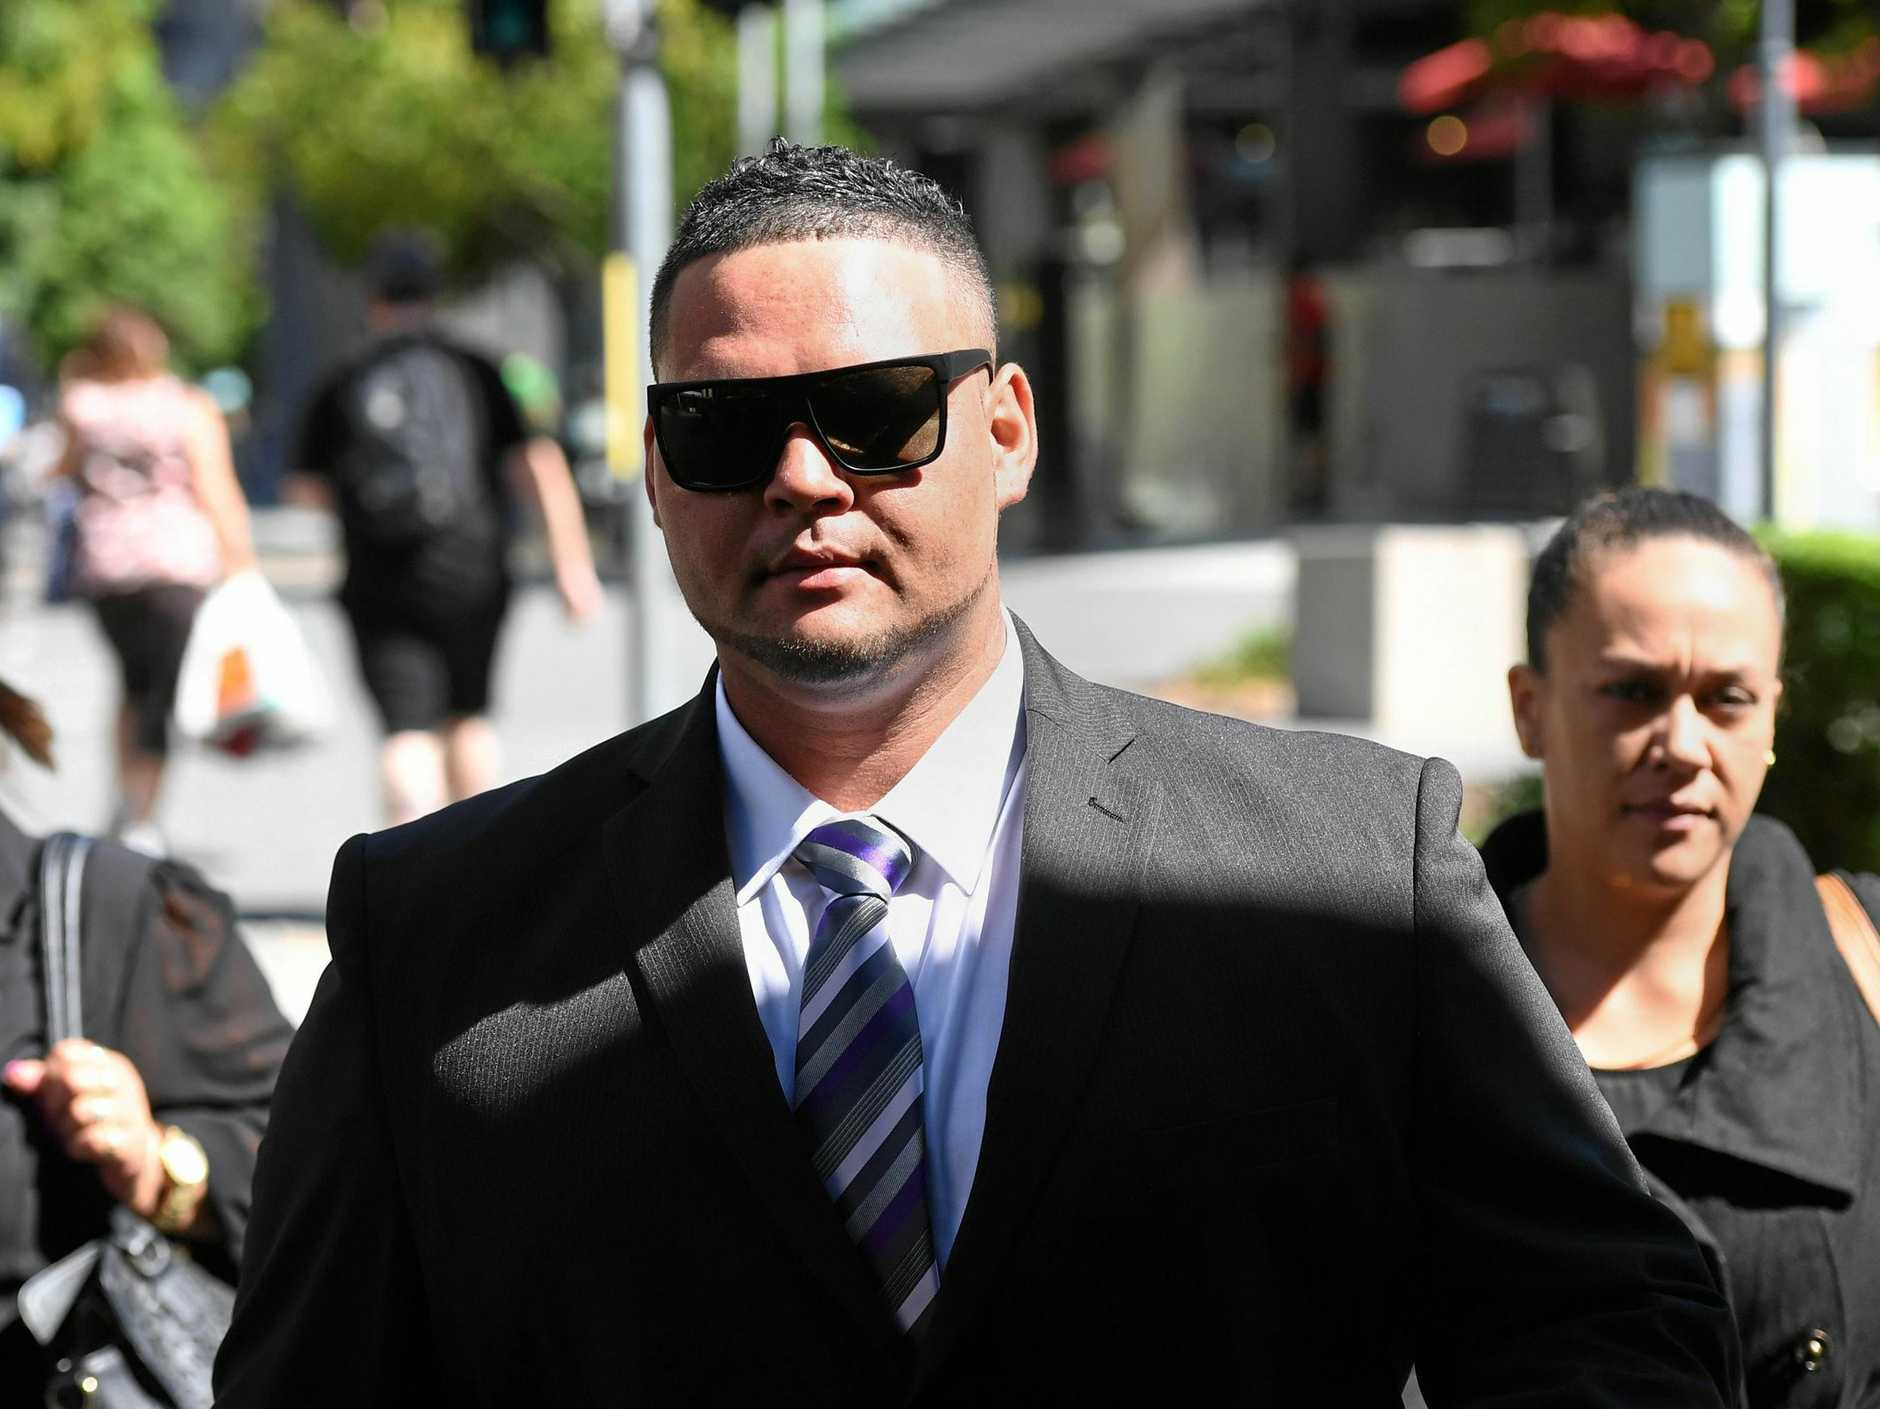 Liam Rawhiti Bliss leaving court after pleading guilty to manslaughter earlier this month.